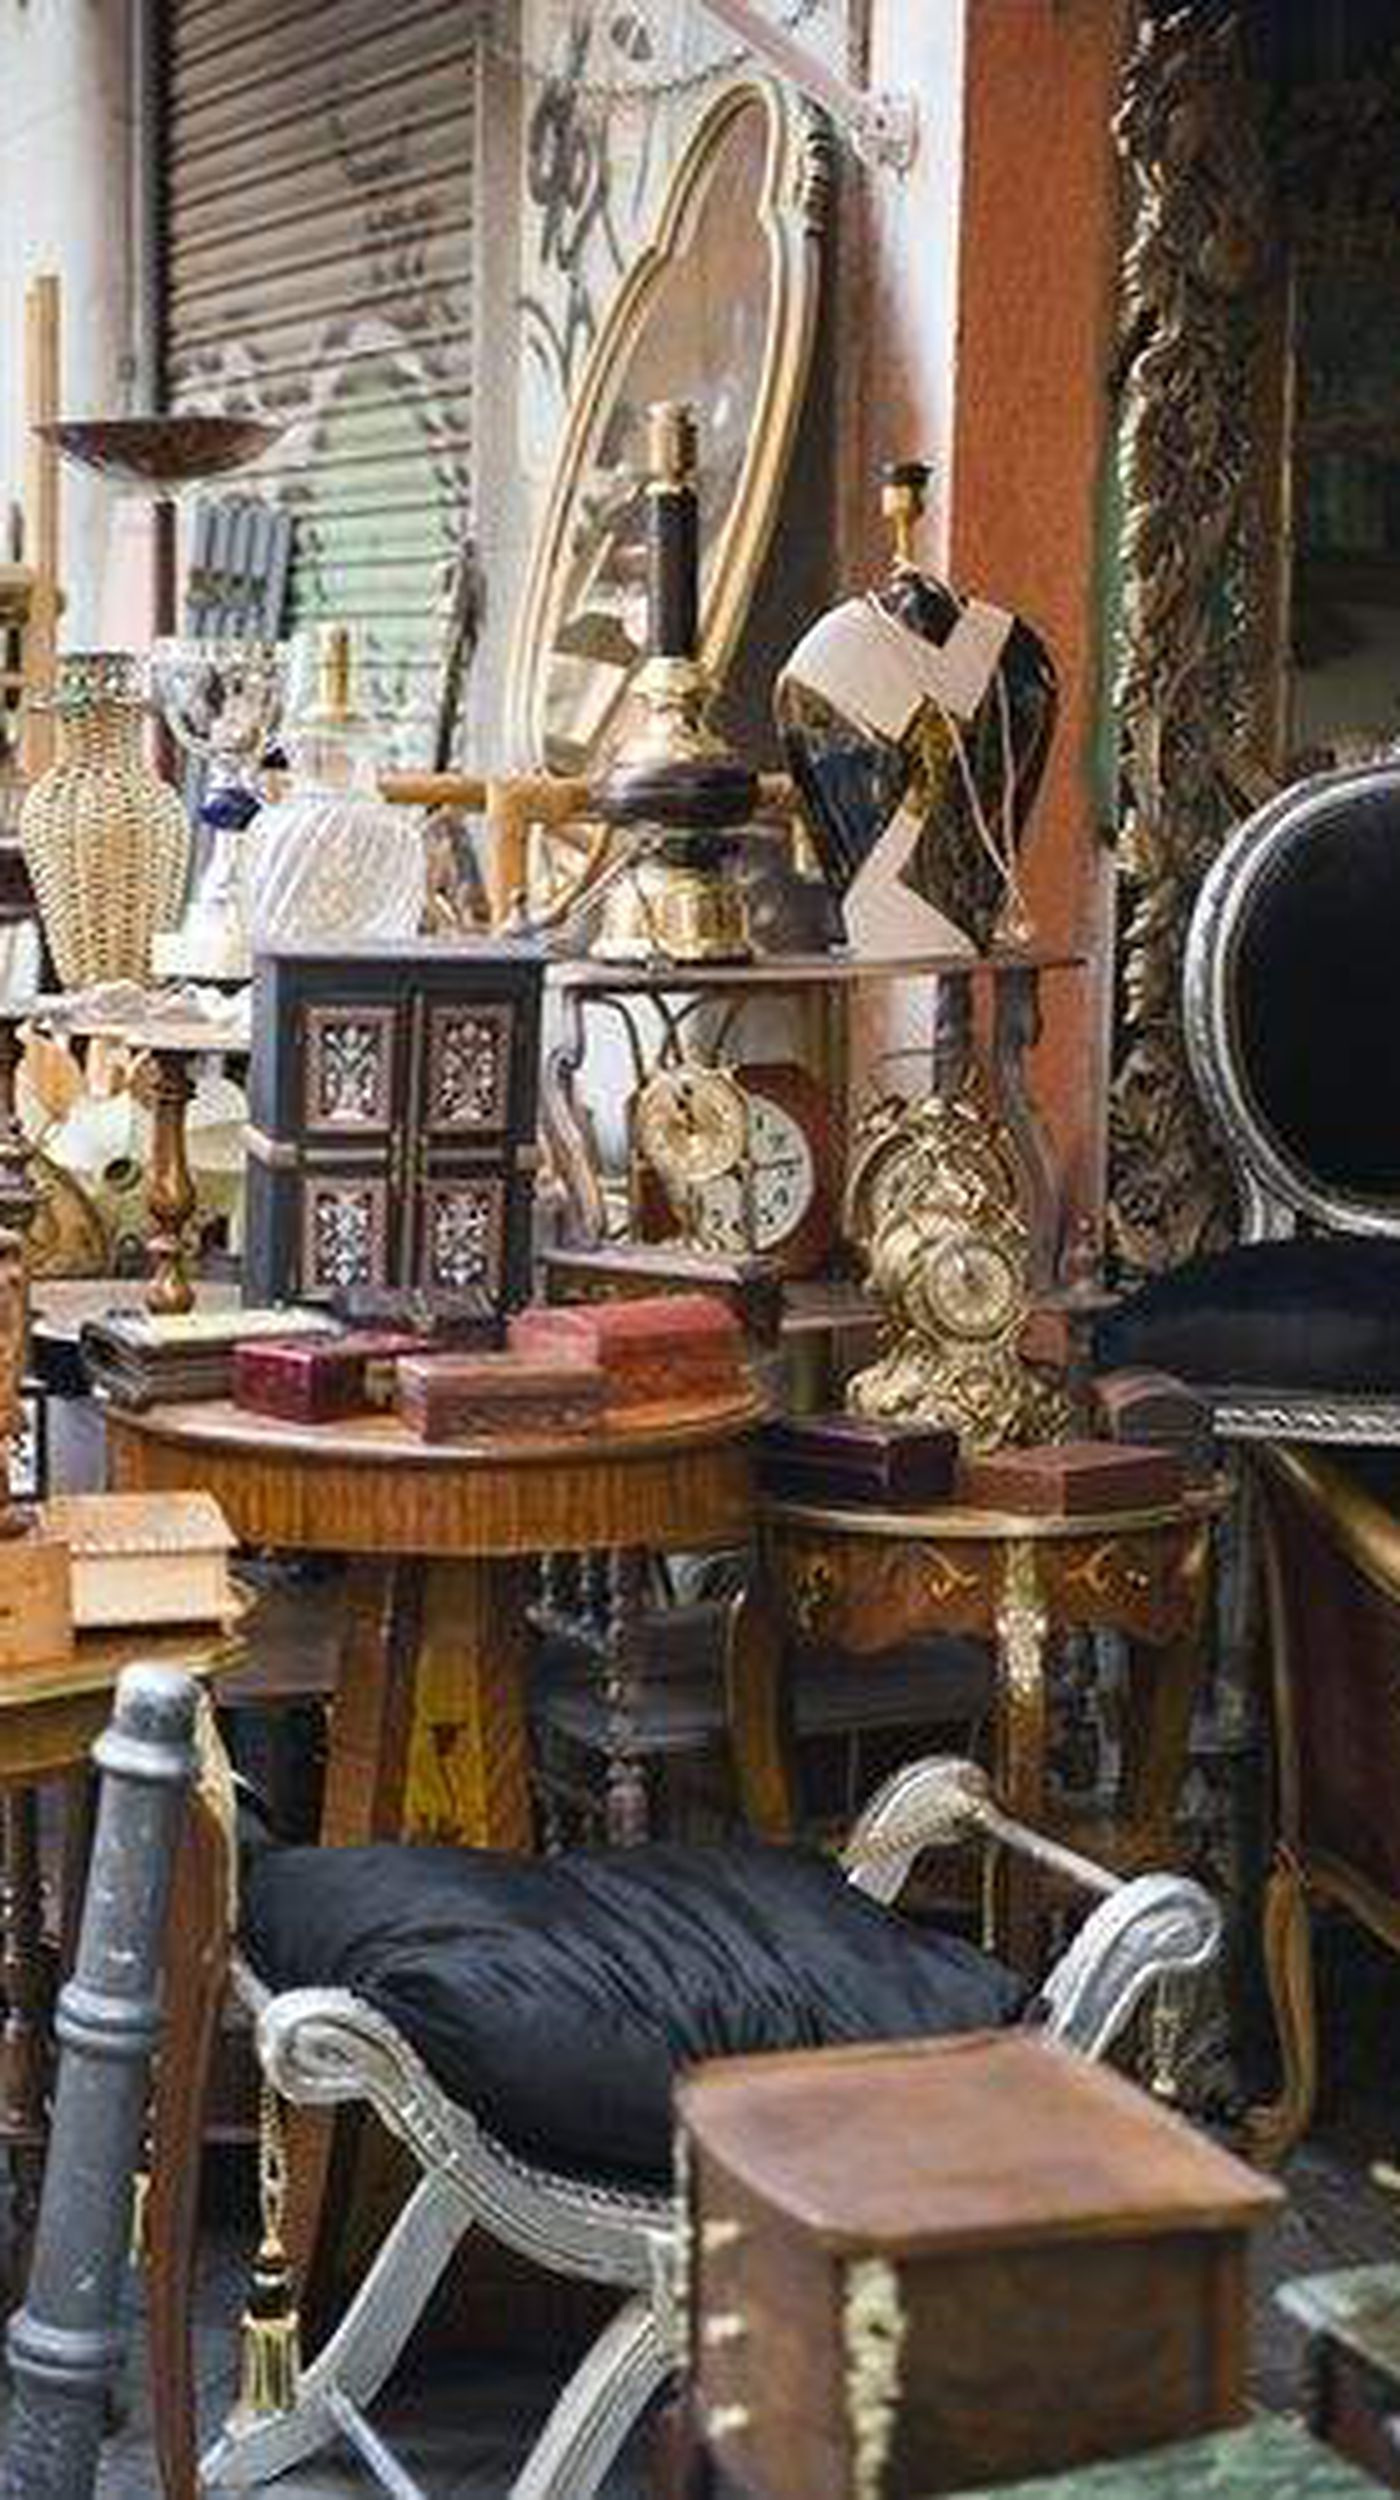 Buying Used Furniture Can Save You Money And Make Your Home Distinctive